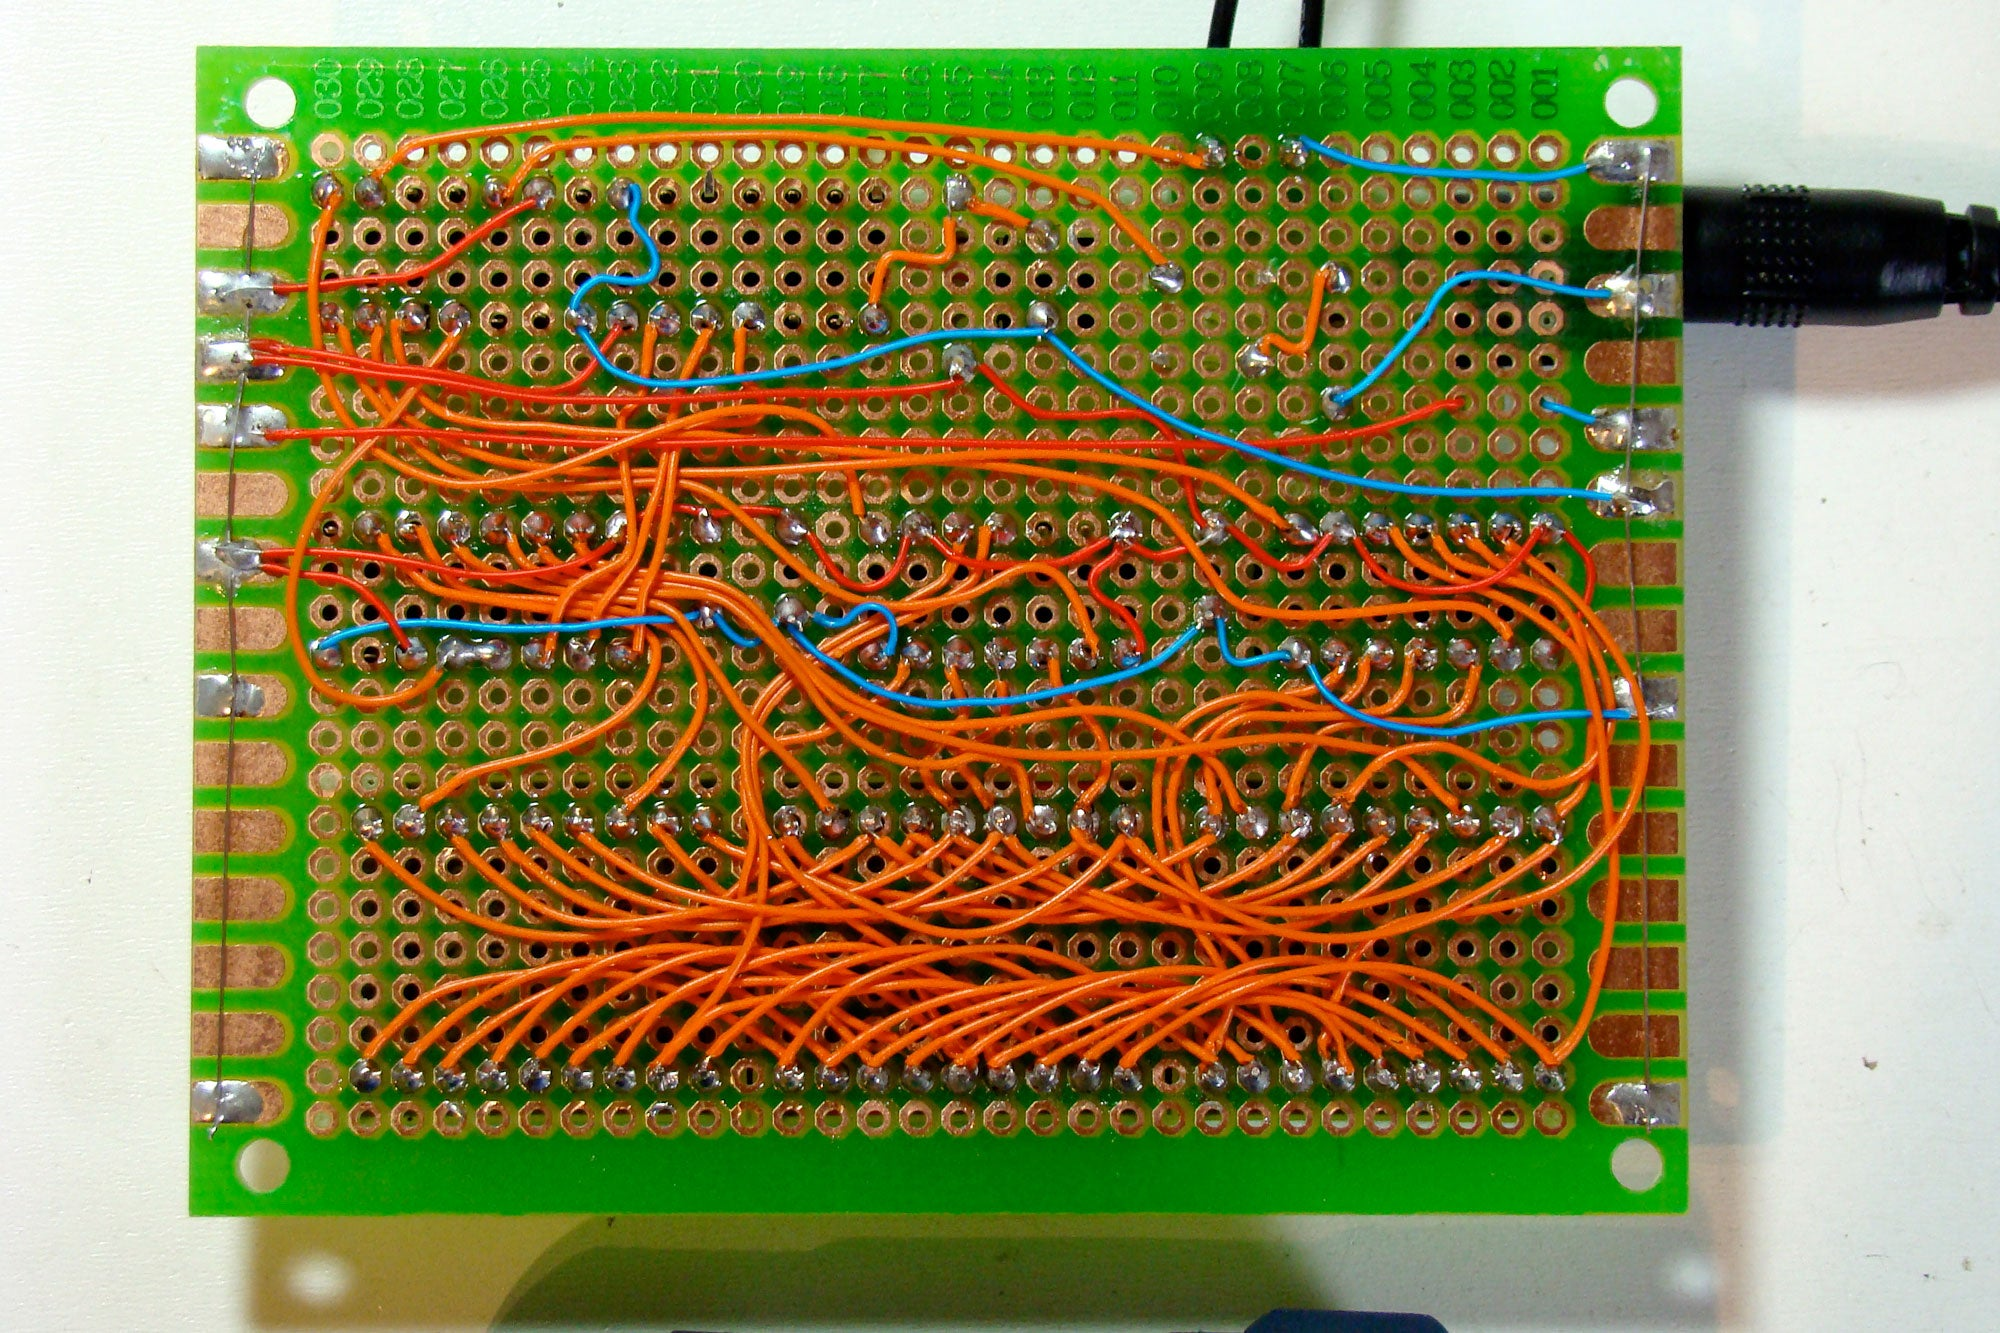 How to Prototype Without Using Printed Circuit Boards : 8 Steps -  Instructables